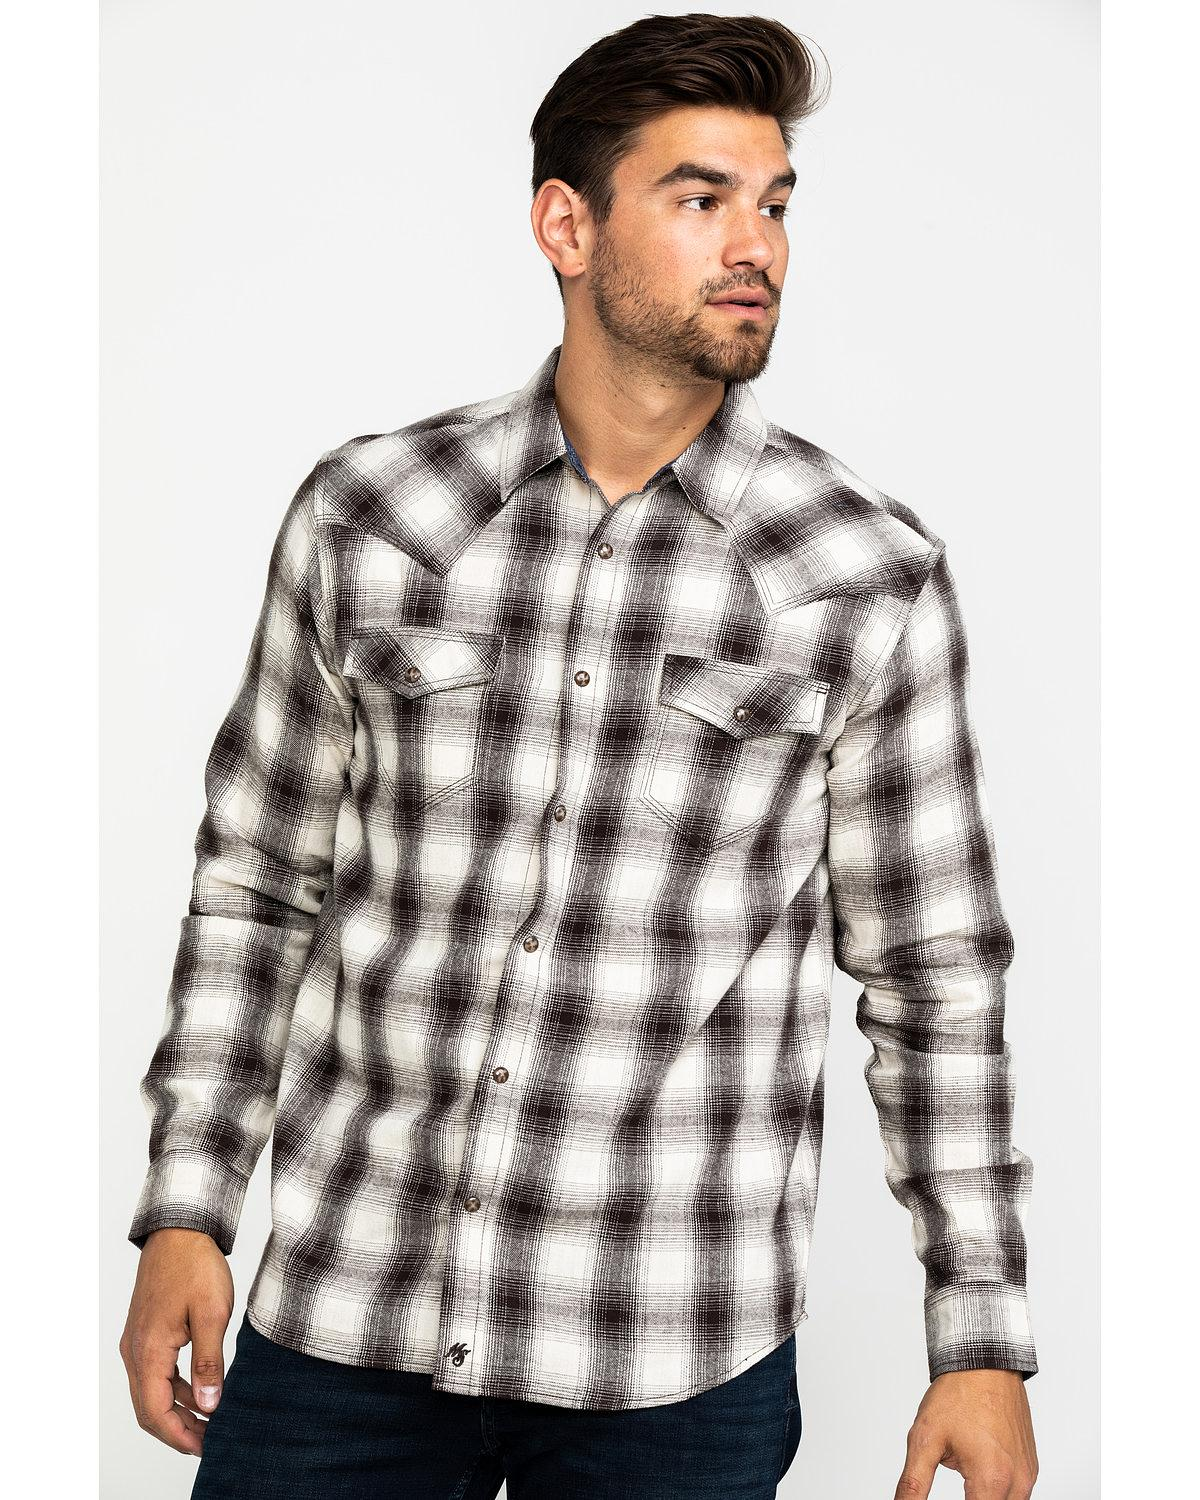 Men's Clearance Clothing